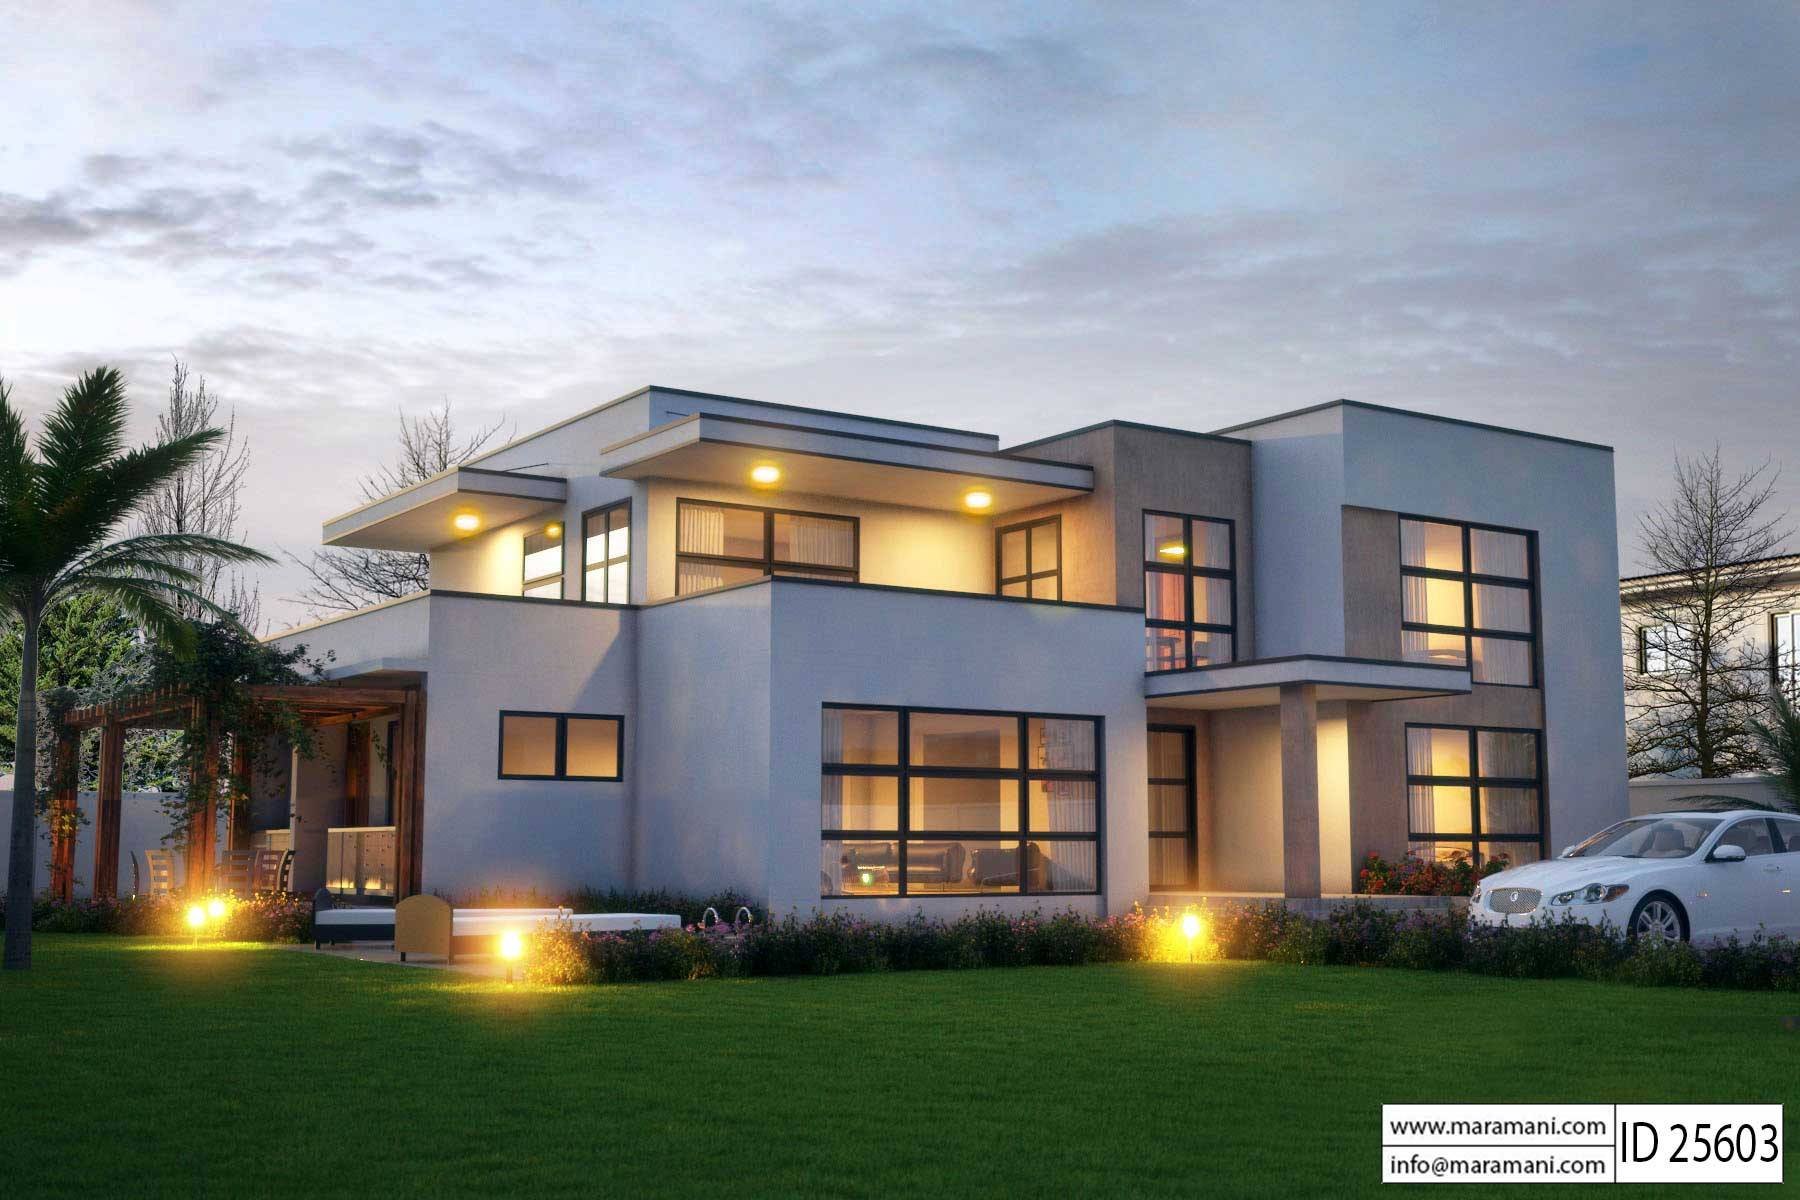 Modern 5 bedroom house design id 25603 floor plans by for 5 bedroom house